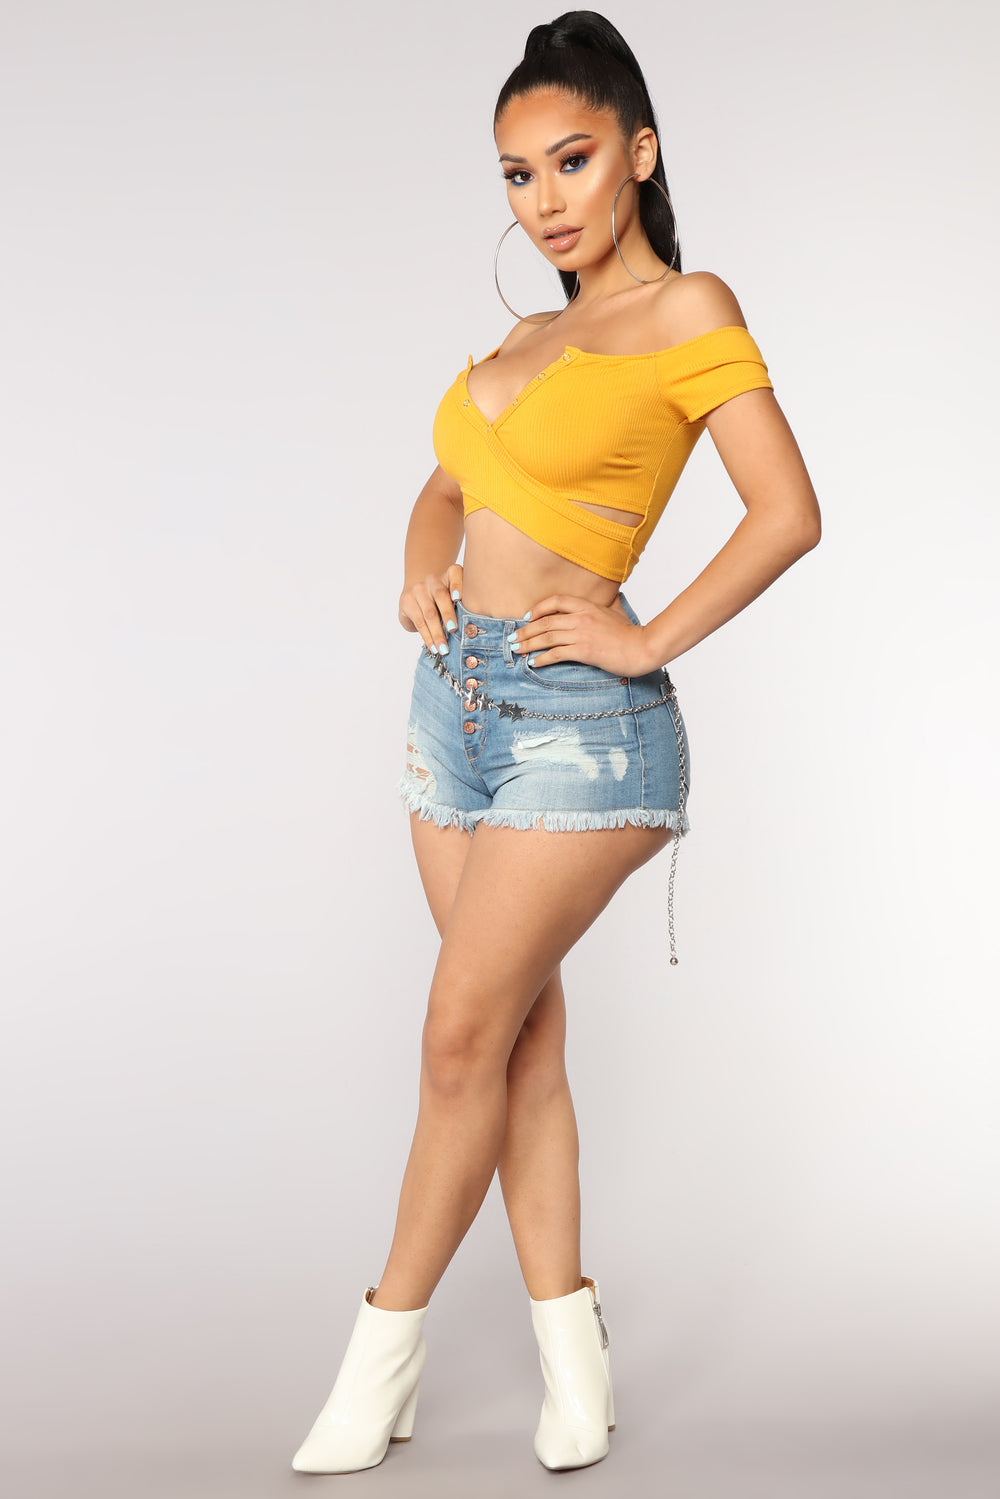 Take It or Leave It Crop Top - Mustard